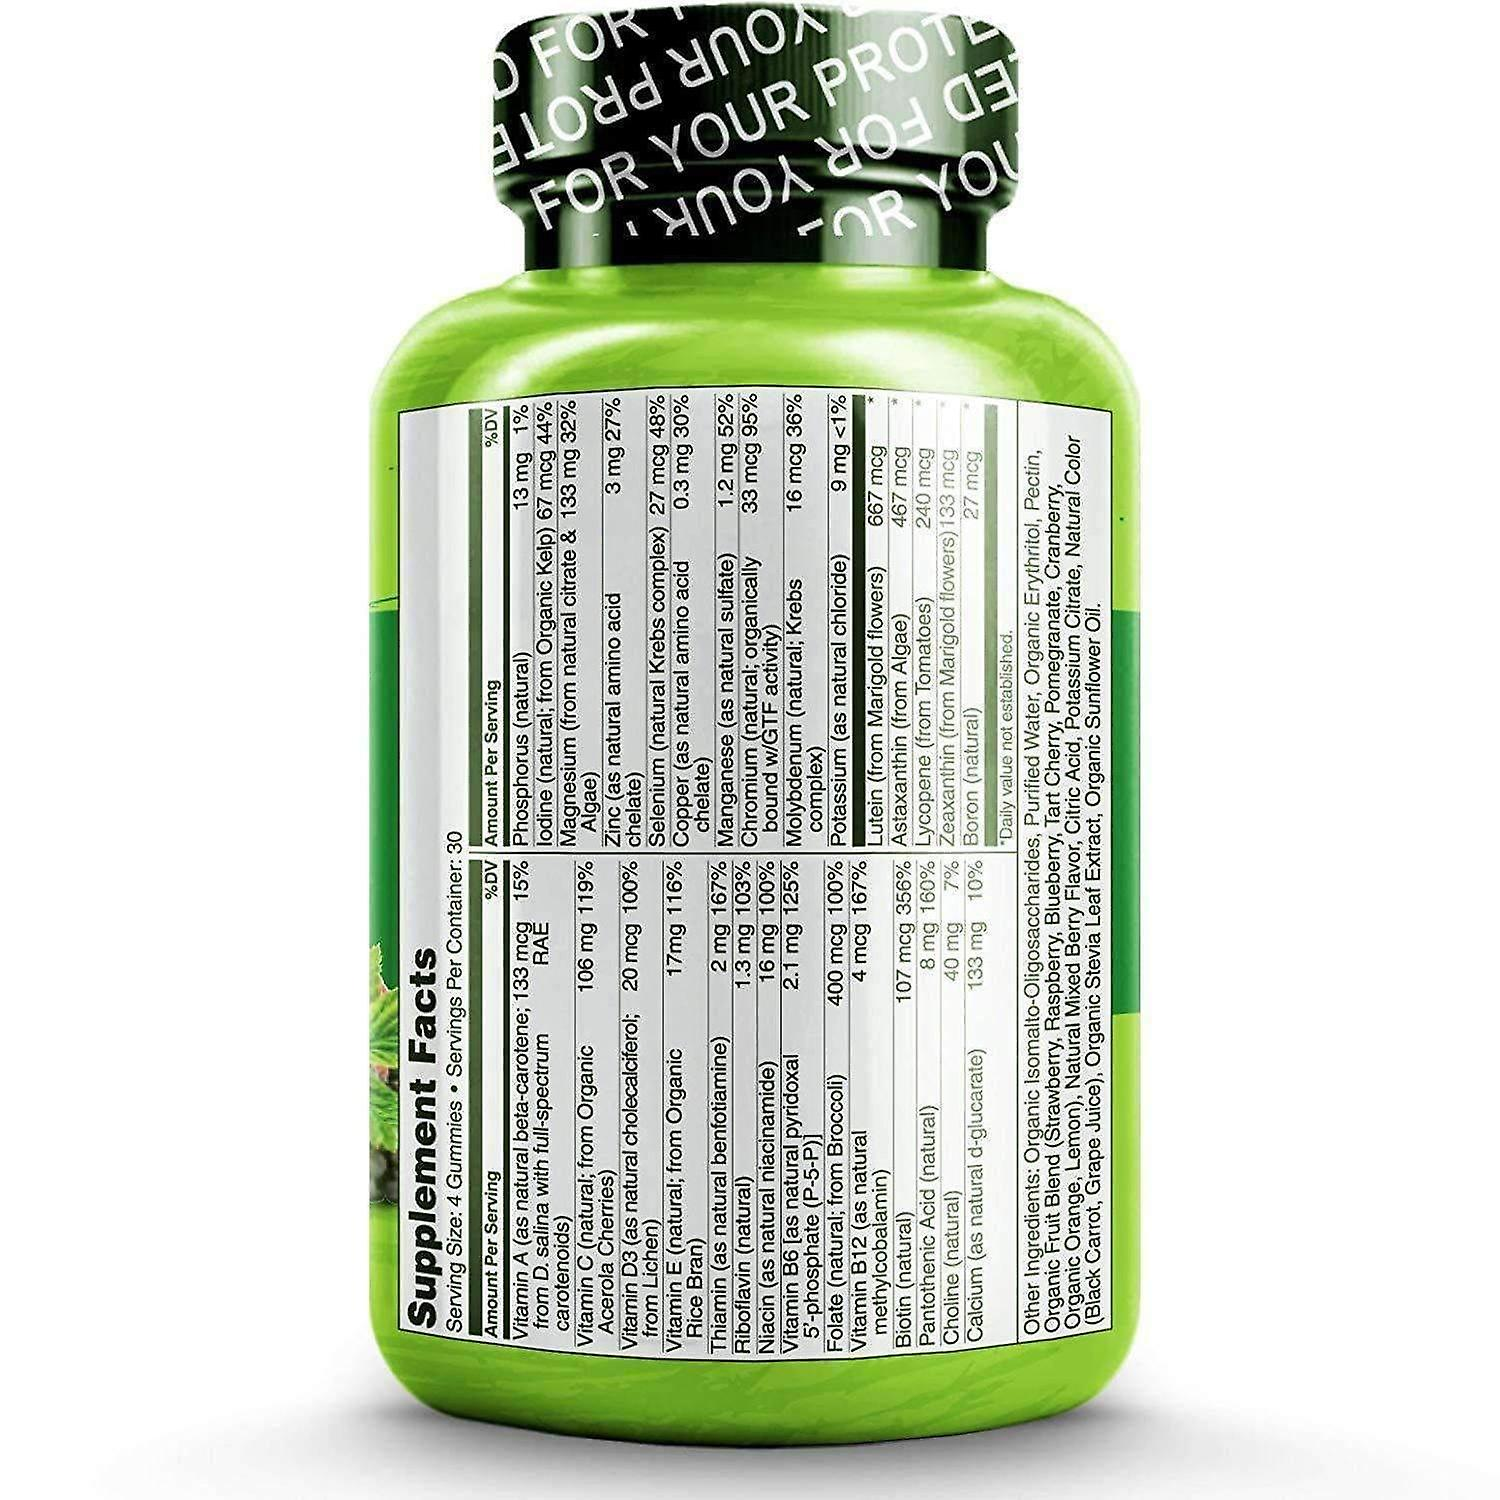 Whole food vitamin gummies for adults with natural vitamins - 120 gums | 1 month supply (vegan)